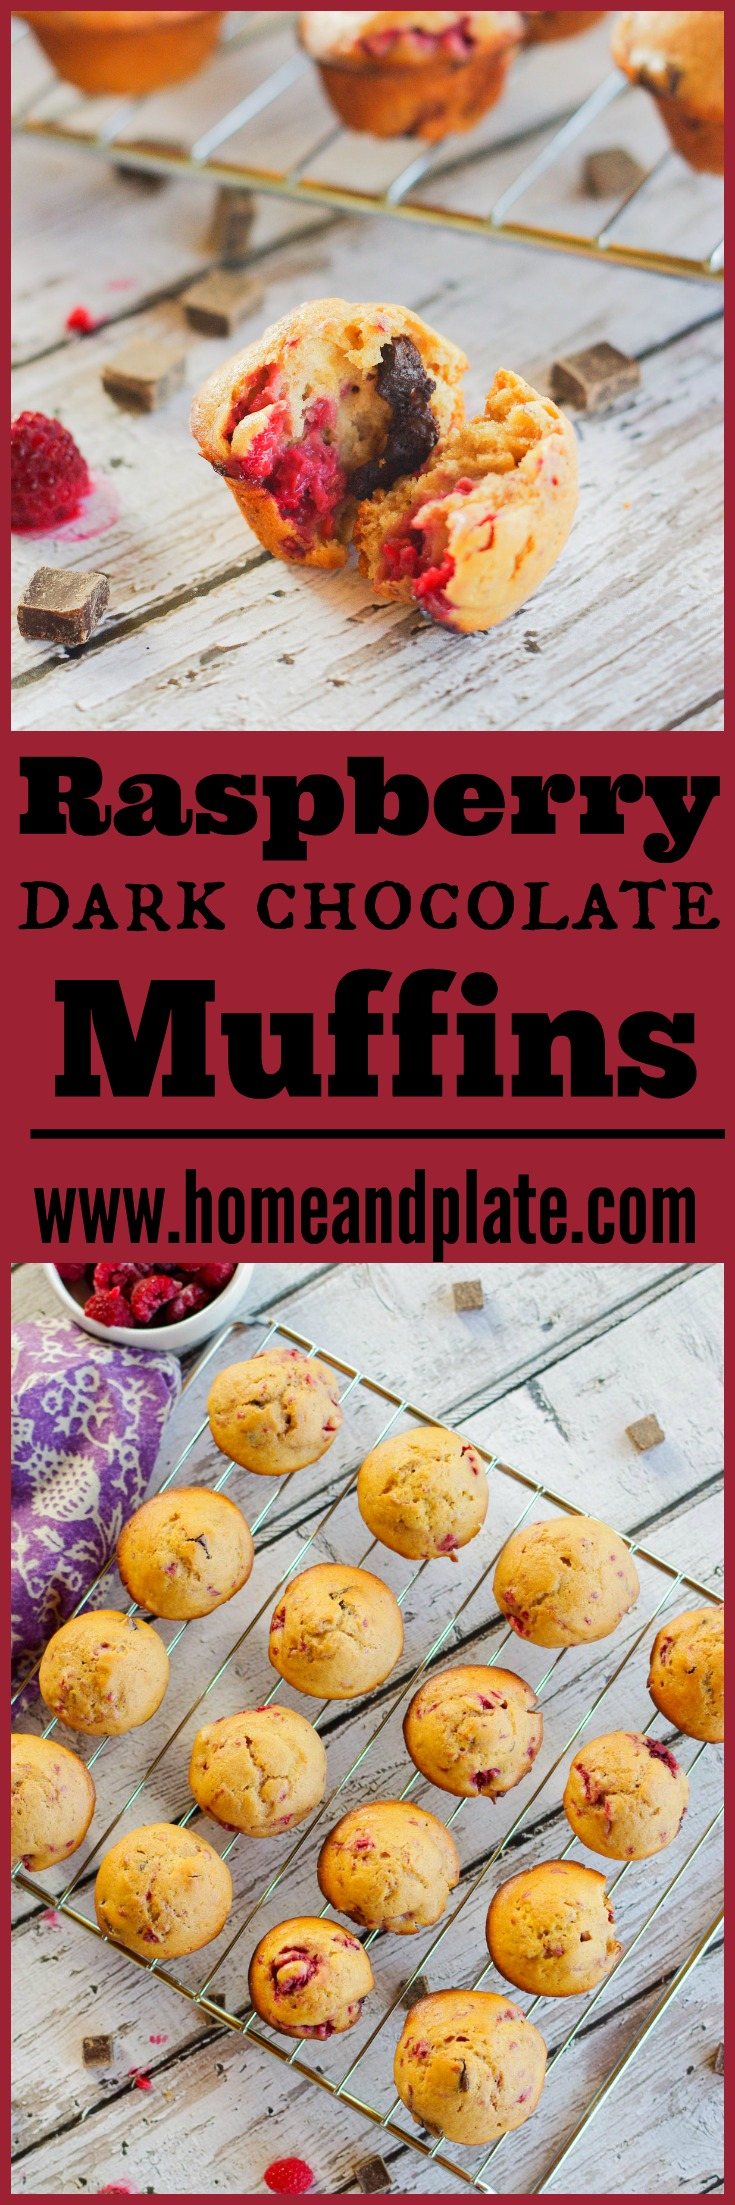 Raspberry Dark Chocolate Chunk Muffins | www.homeandplate.com | My decadent mini muffins are filled with dark chocolate chunks and juicy raspberries.